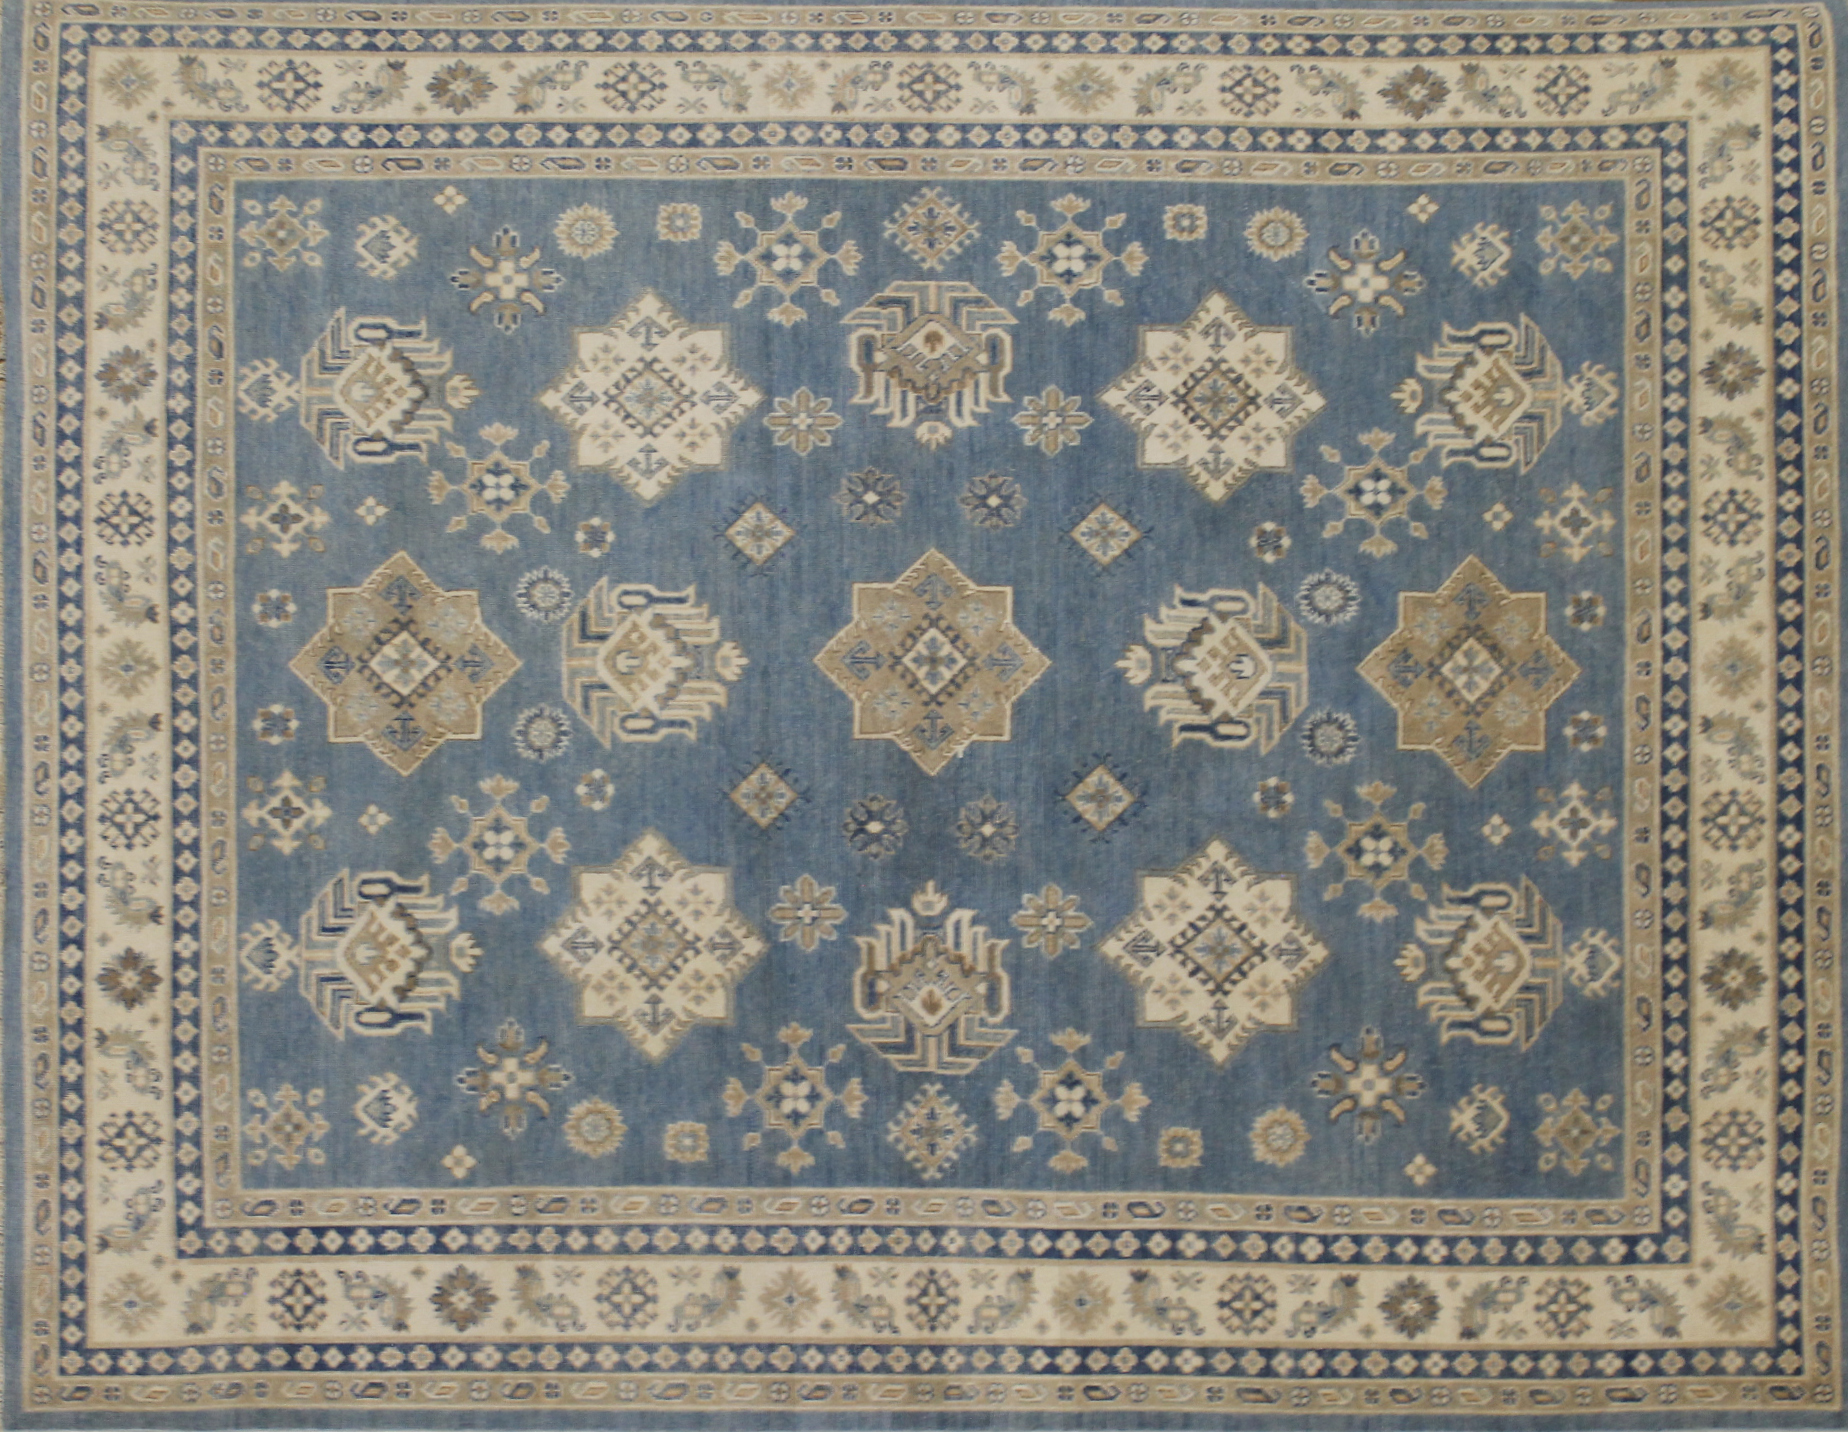 8x10 Kazak Hand Knotted Wool Area Rug - MR022571